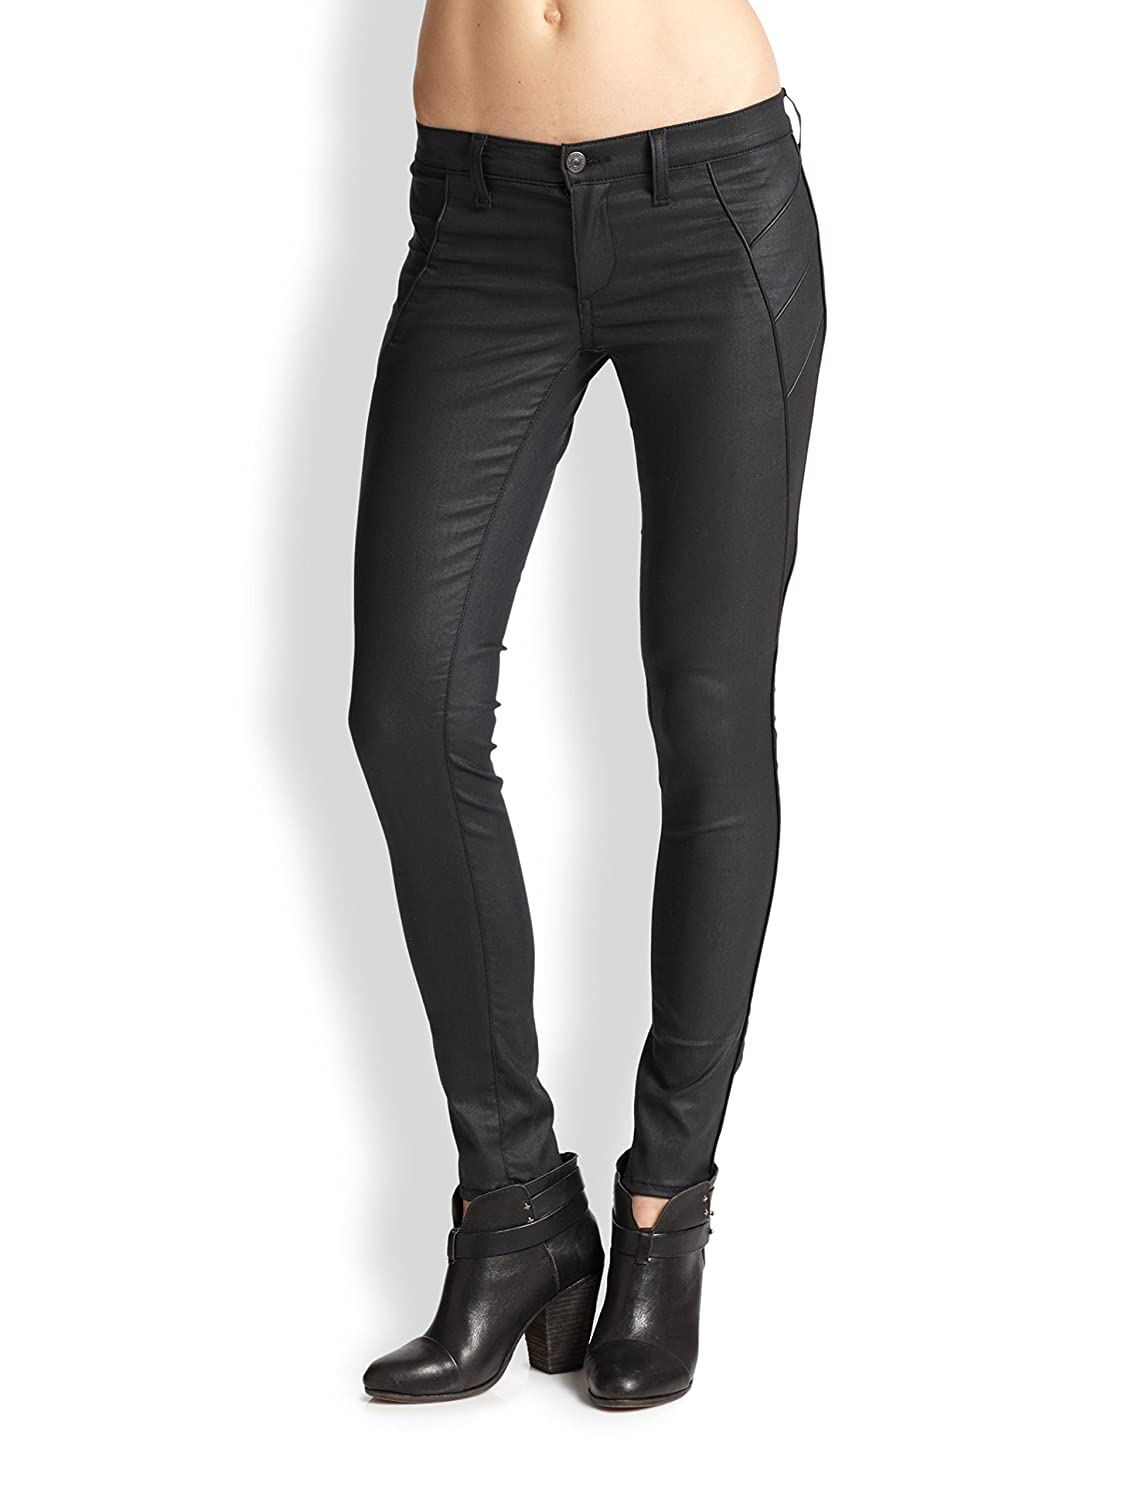 c75dc7b39e Rag   Bone Black Shoreditch Leggings Jeans 31 durable modeling ...